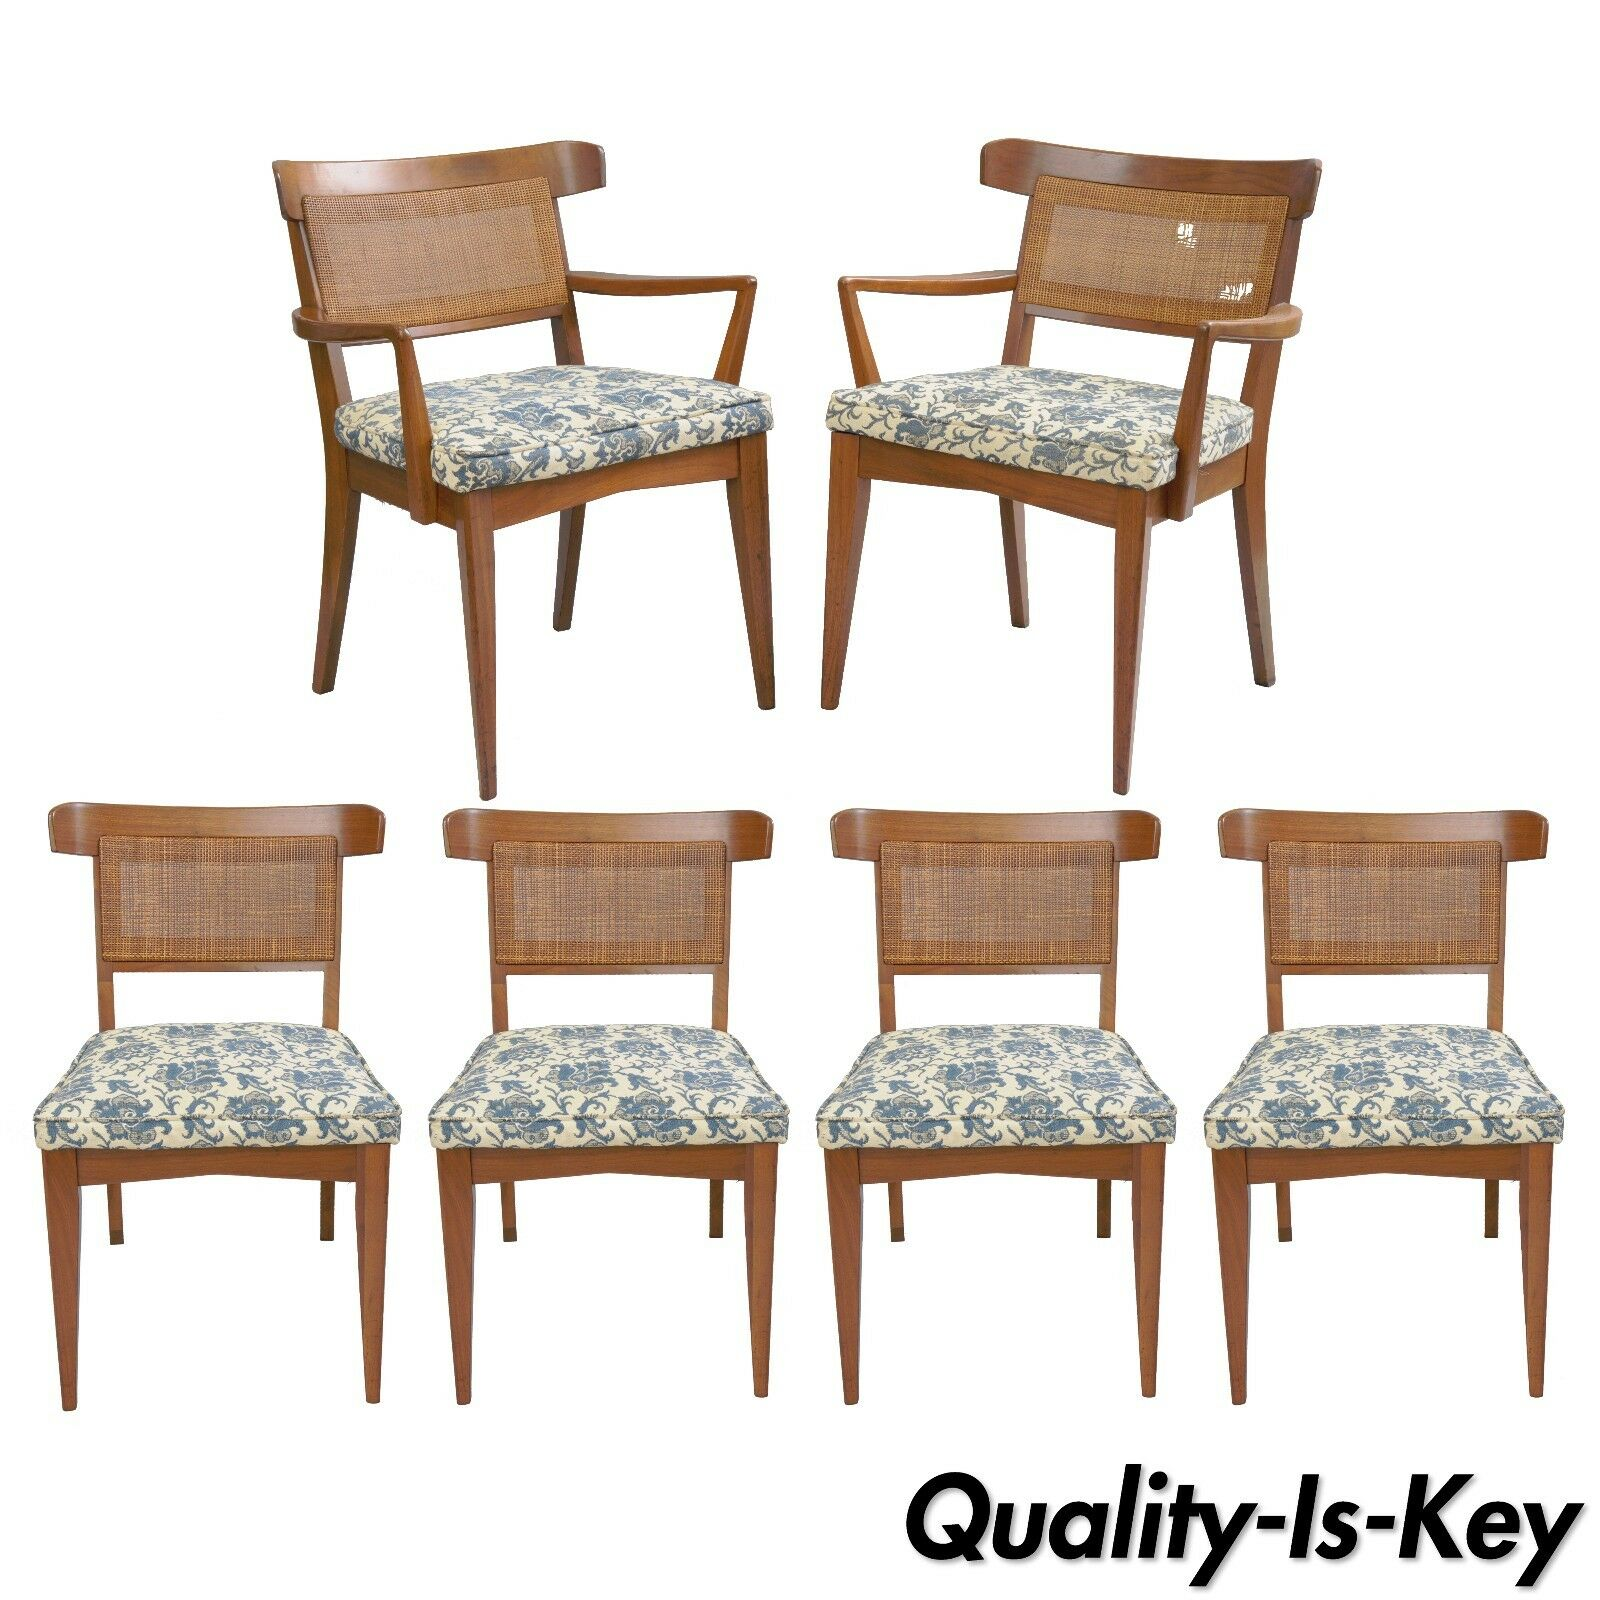 6 vtg mid century modern walnut curved cane back dining chairs tomlinson style 1 of 12only 1 available see more